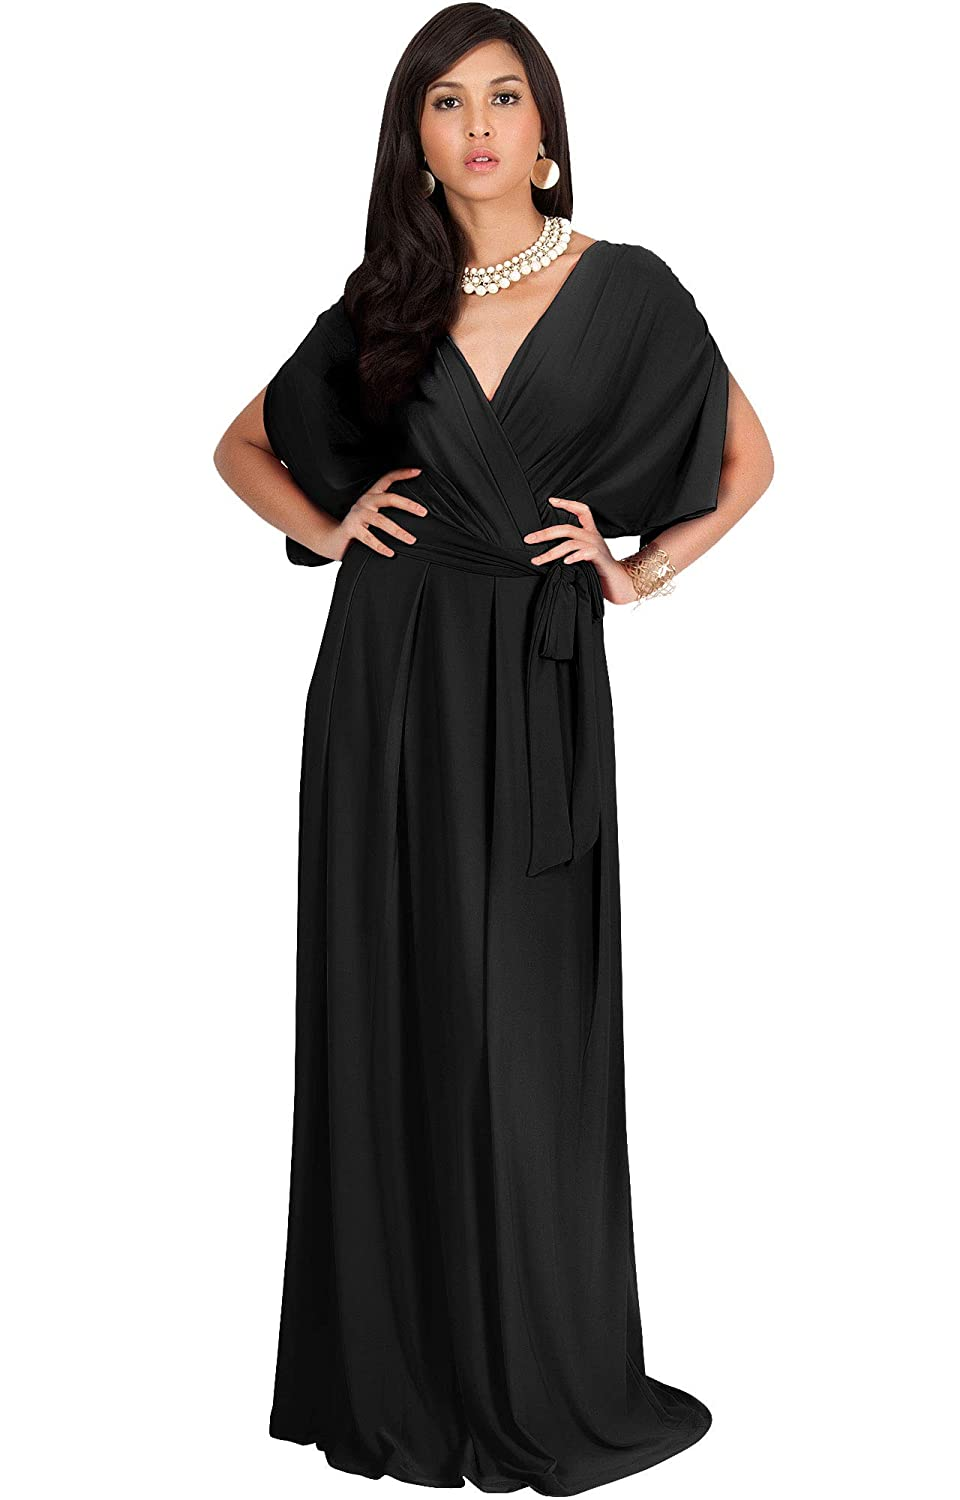 89b6042372 KOH KOH Formal Short Sleeve Cocktail Flowy V-Neck Gown at Amazon Women s  Clothing store